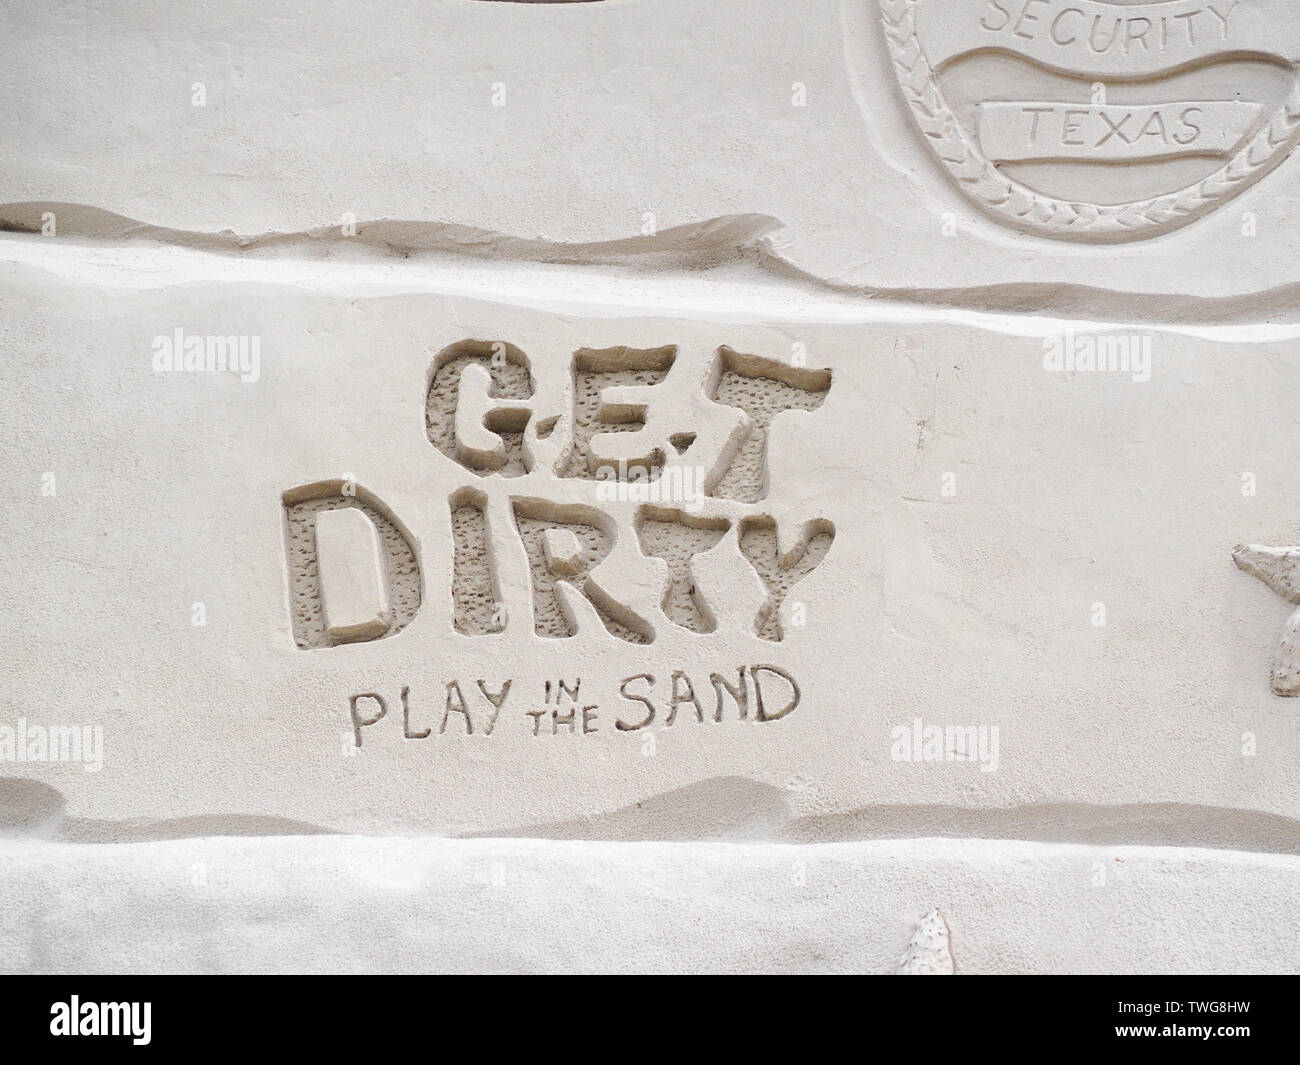 ' Get Dirty Play in the Sand,' slogan from Texas Sandfest 2019 sculpted in sand, closeup. Port Aransas, Texas USA. - Stock Image